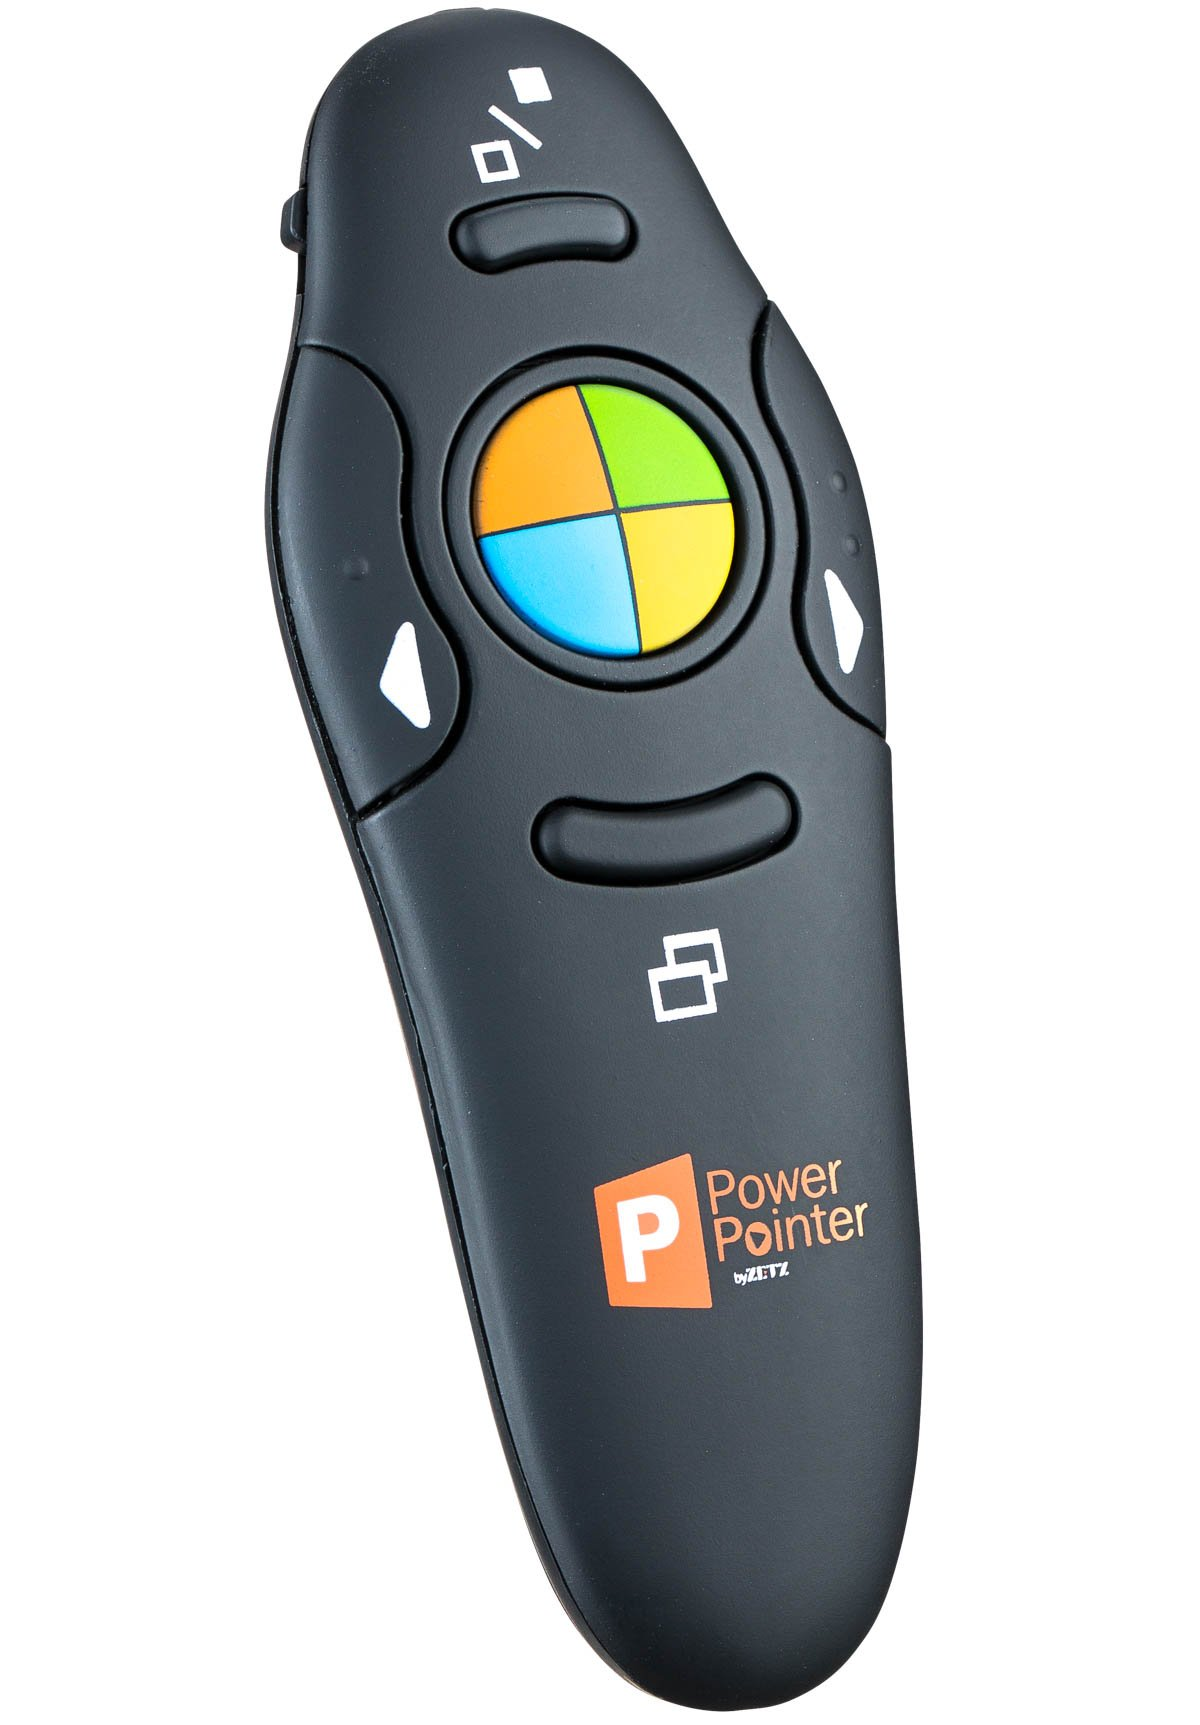 ZETZ Wireless Presenter Remote Control With USB & Laser Pointer | Powerful & Ergonomic PPT Clicker Easy To Use | For Microsoft Power Point Presentations, Excel & Interaction With Crowd by Zetz (Image #1)